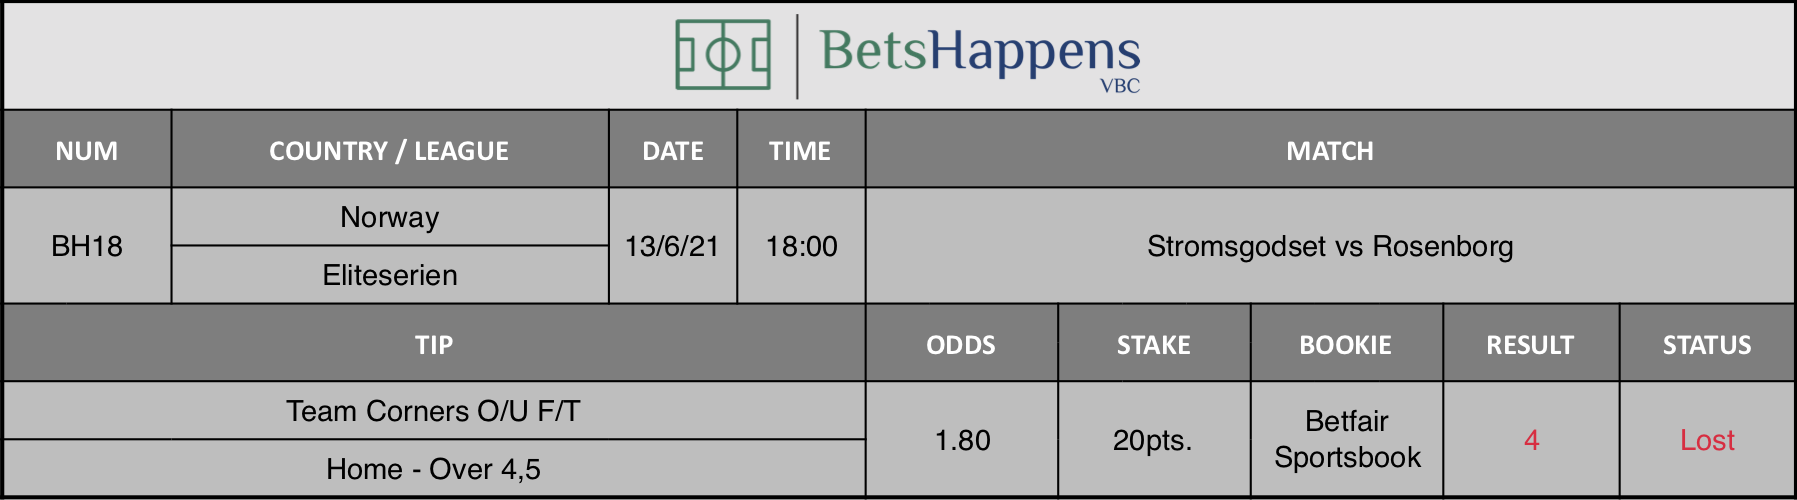 Results of our tip for the Stromsgodset vs Rosenborg Match Team Corners O/U F/T Home - Over 4,5 is recommended.